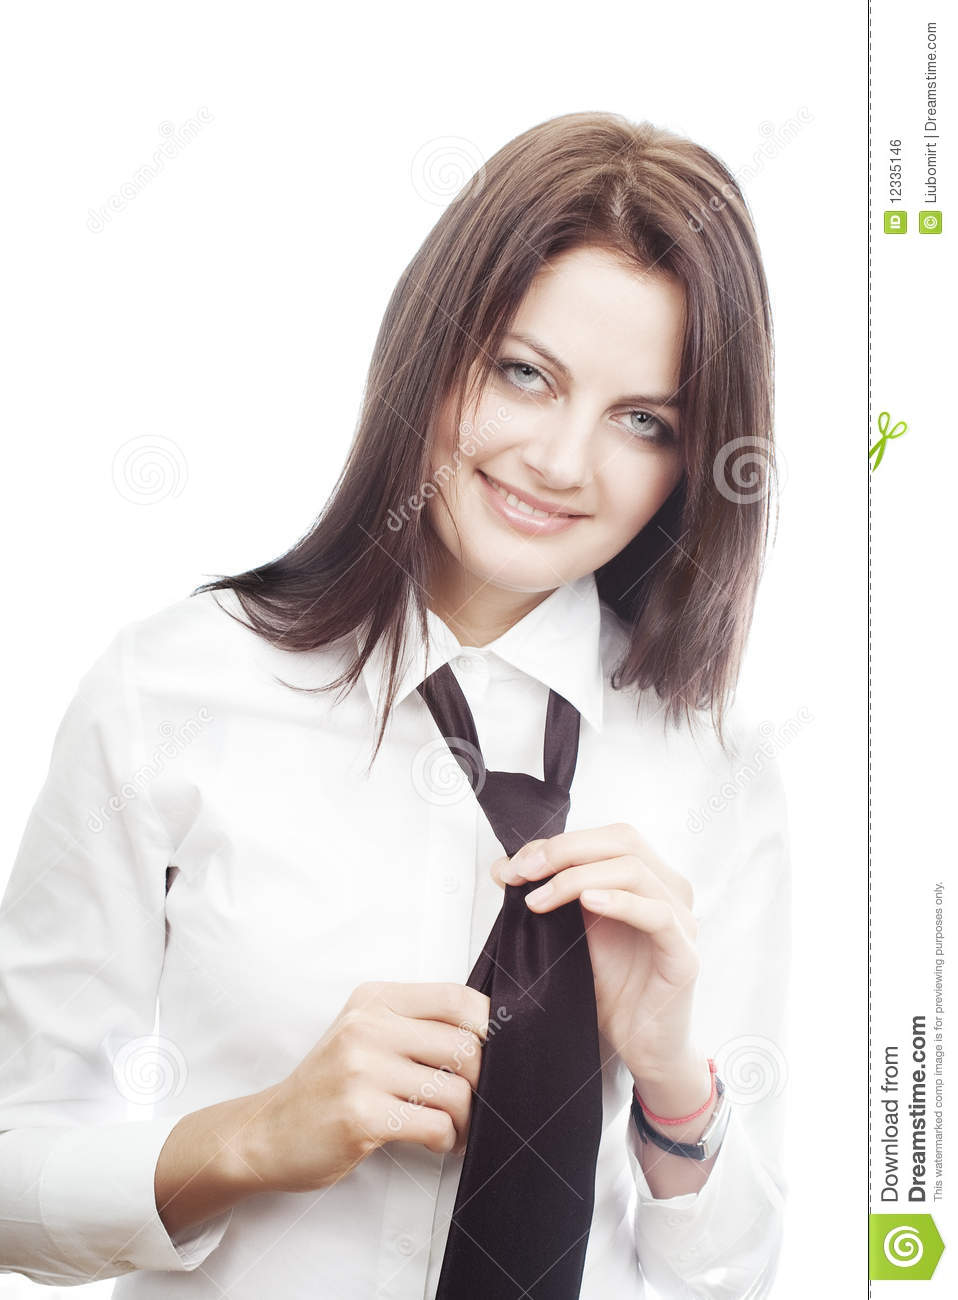 Smiling young woman tying a tie stock photo image of confident download comp ccuart Gallery